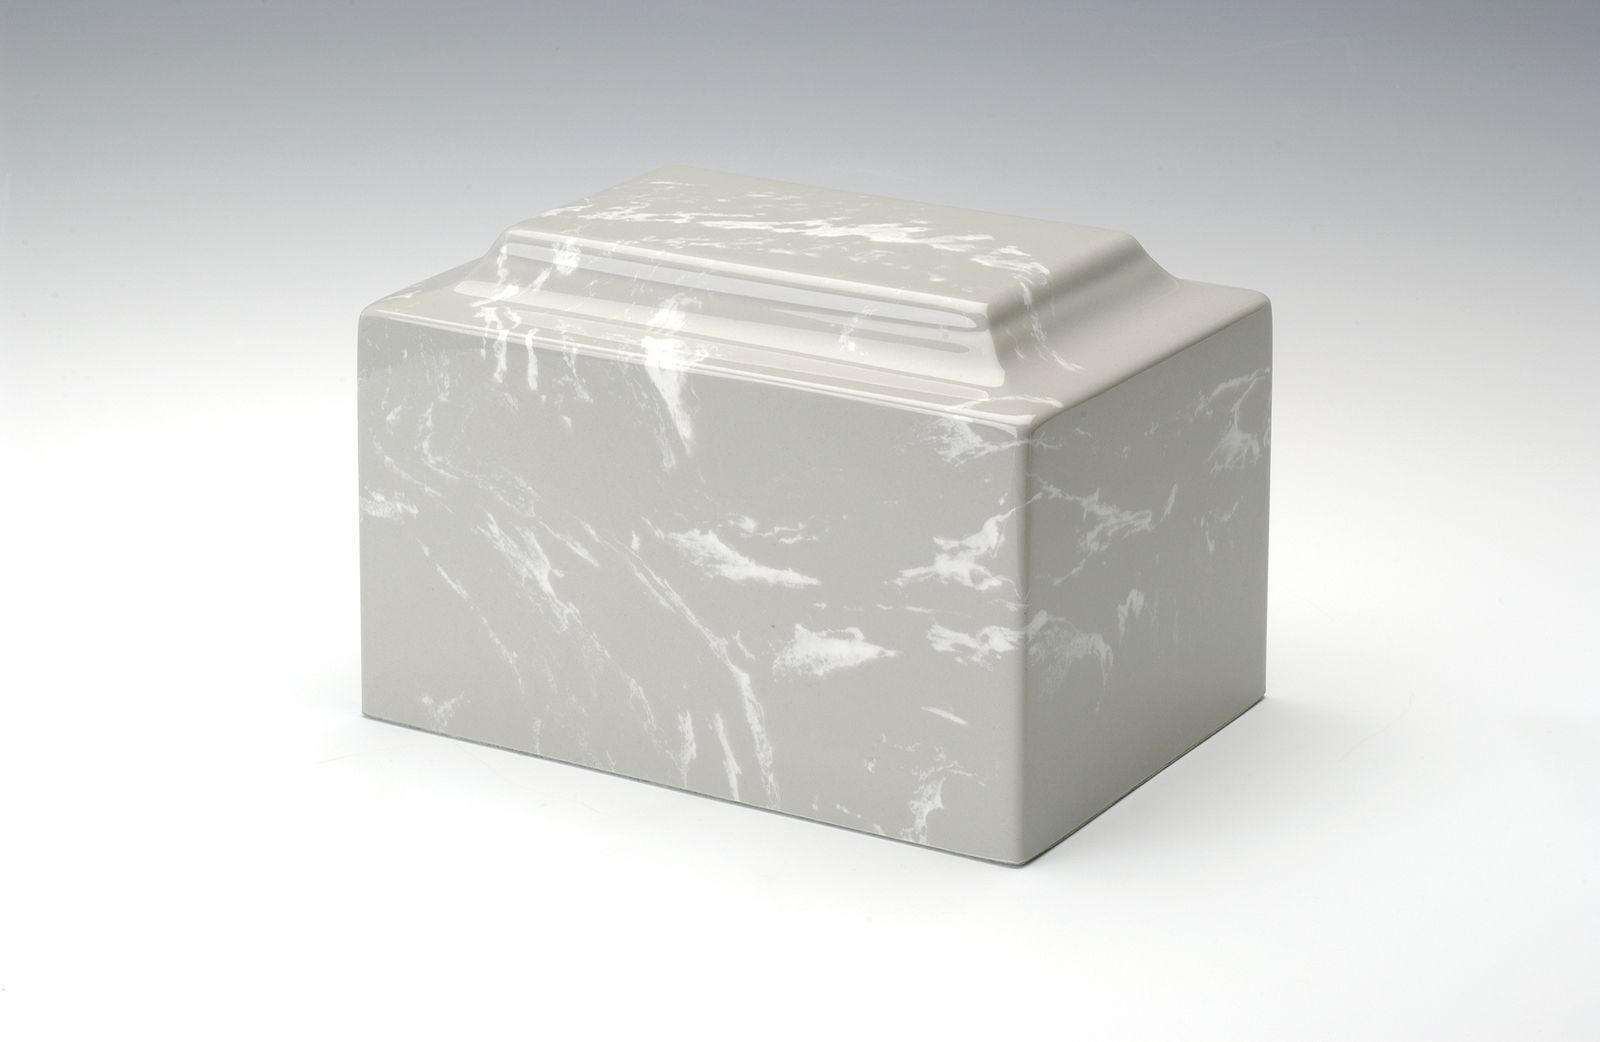 Classic Marble Silver Gray 50 Cubic Inches Cremation Urn For Ashes, TSA Approved